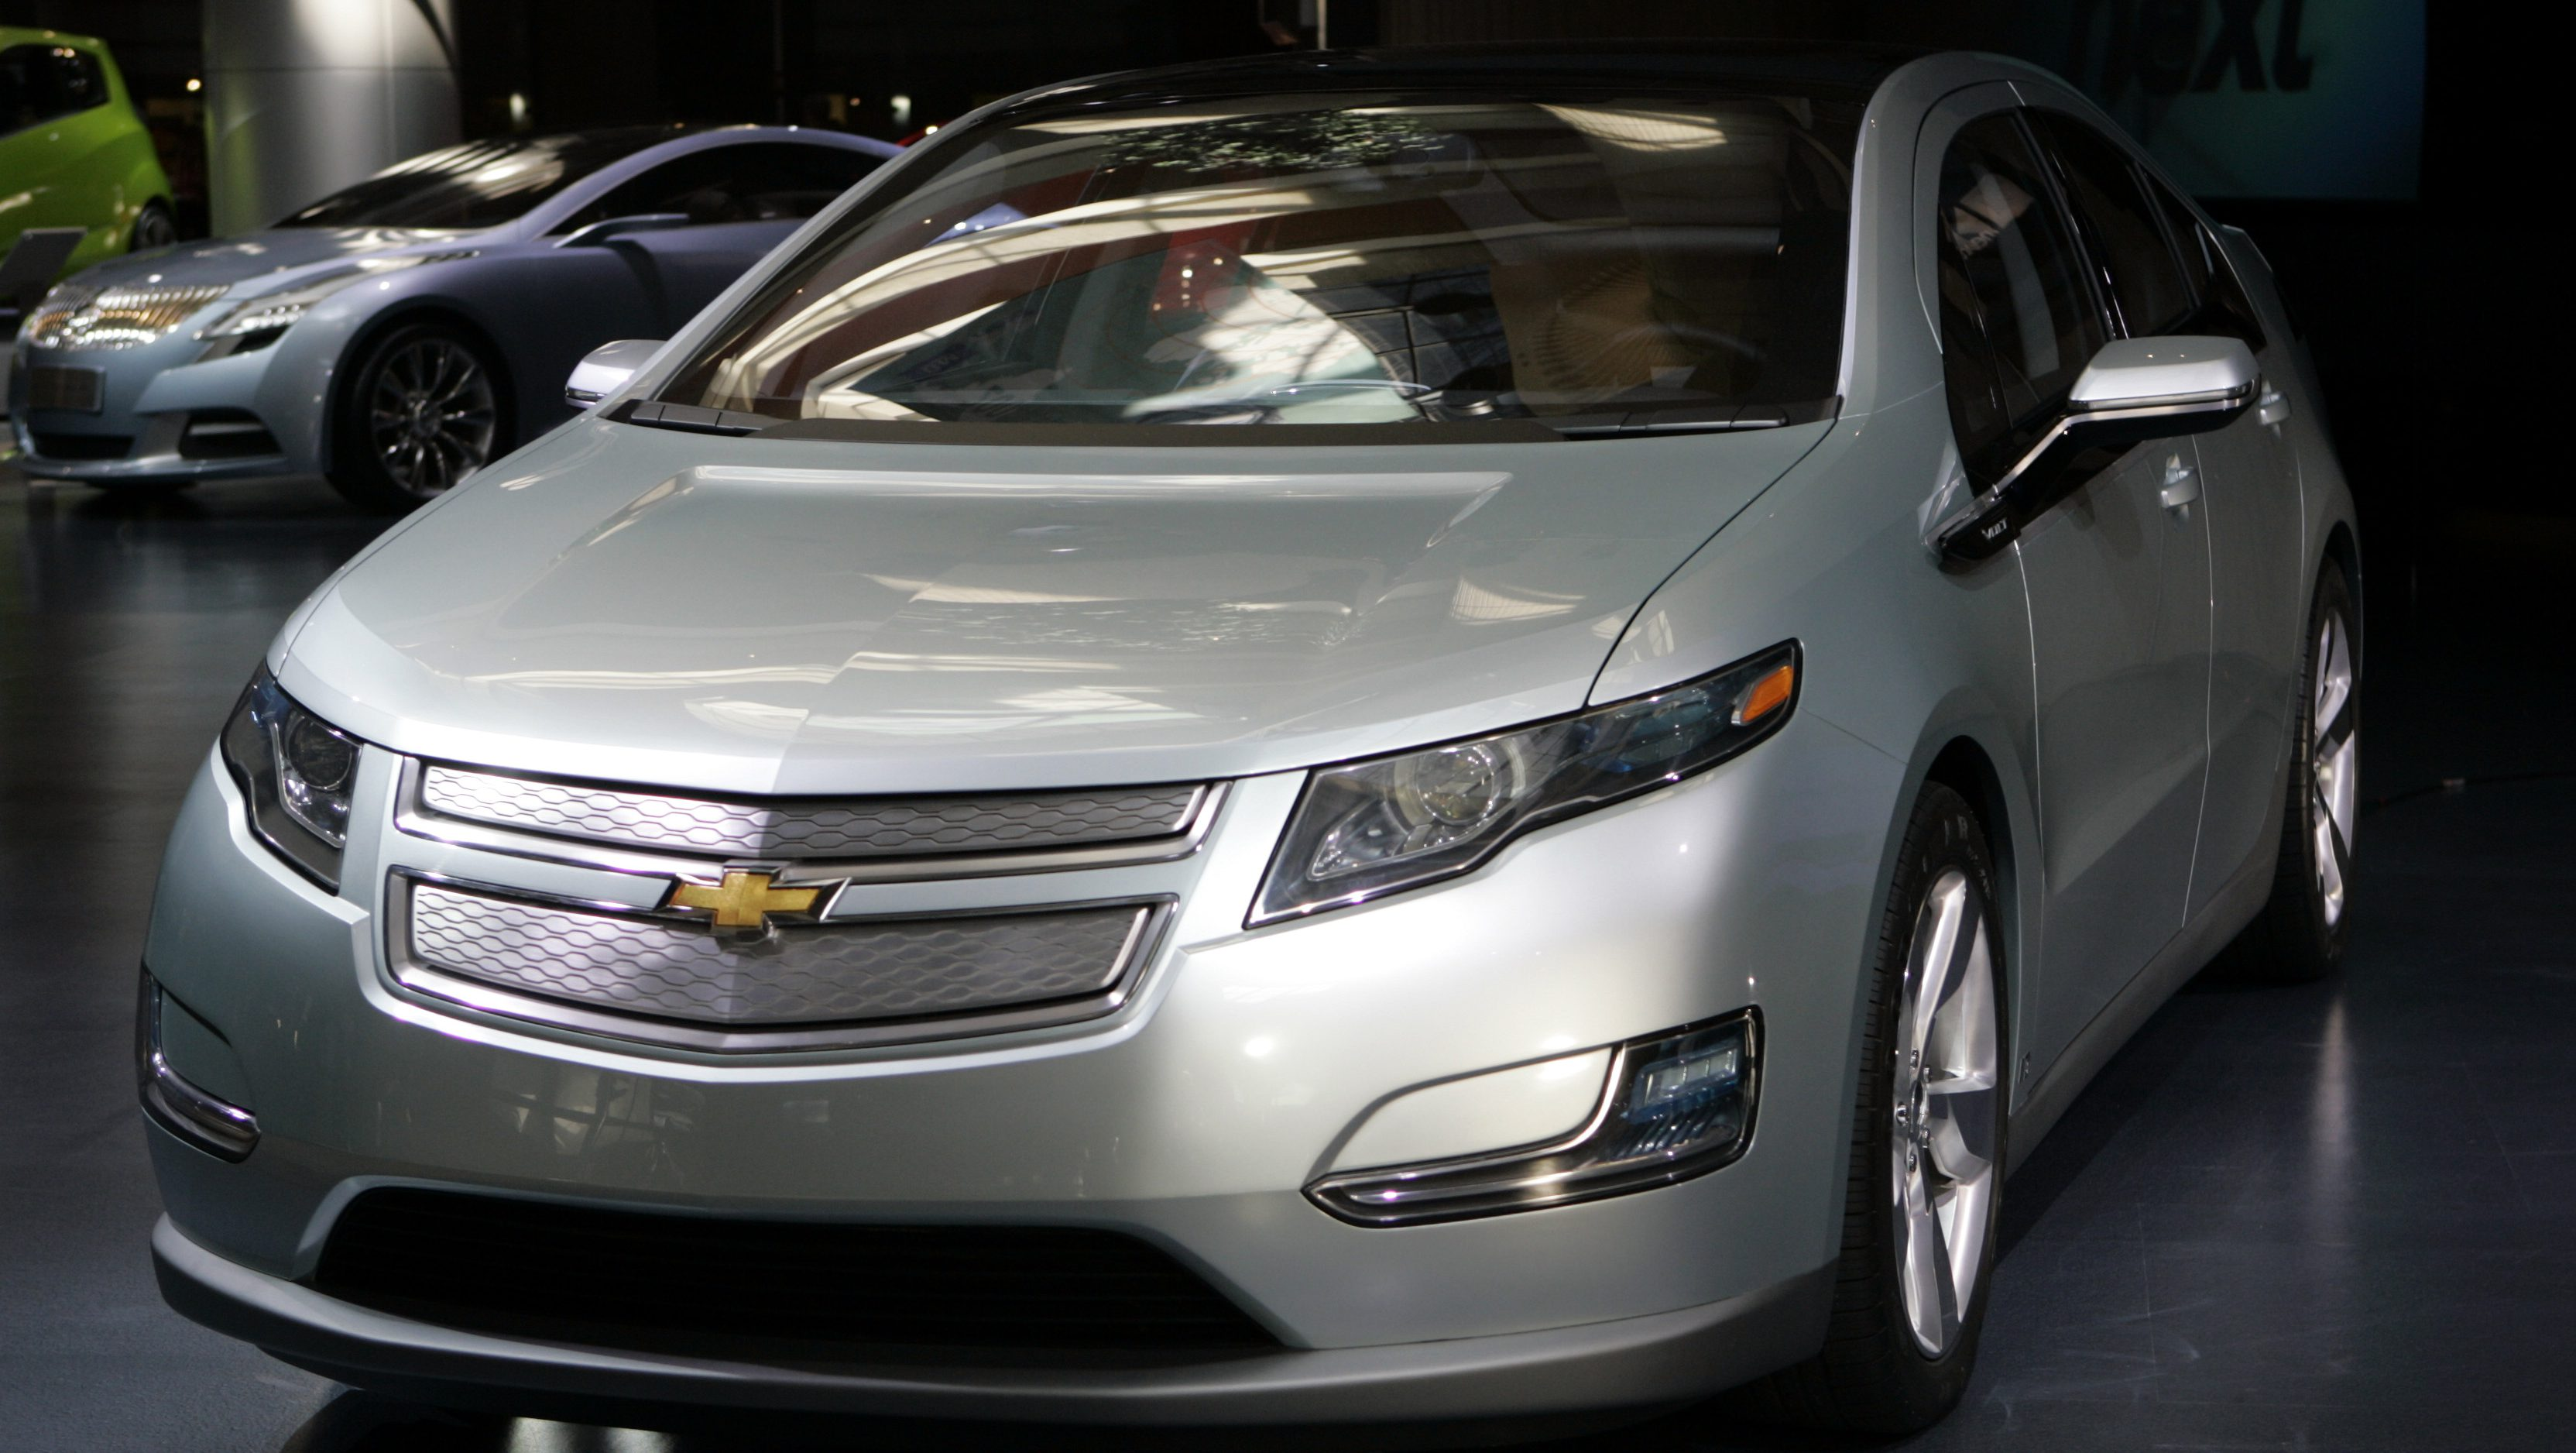 chevy volt 39 s designer jelani aliyu has been appointed boss of nigeria 39 s automobile agency. Black Bedroom Furniture Sets. Home Design Ideas